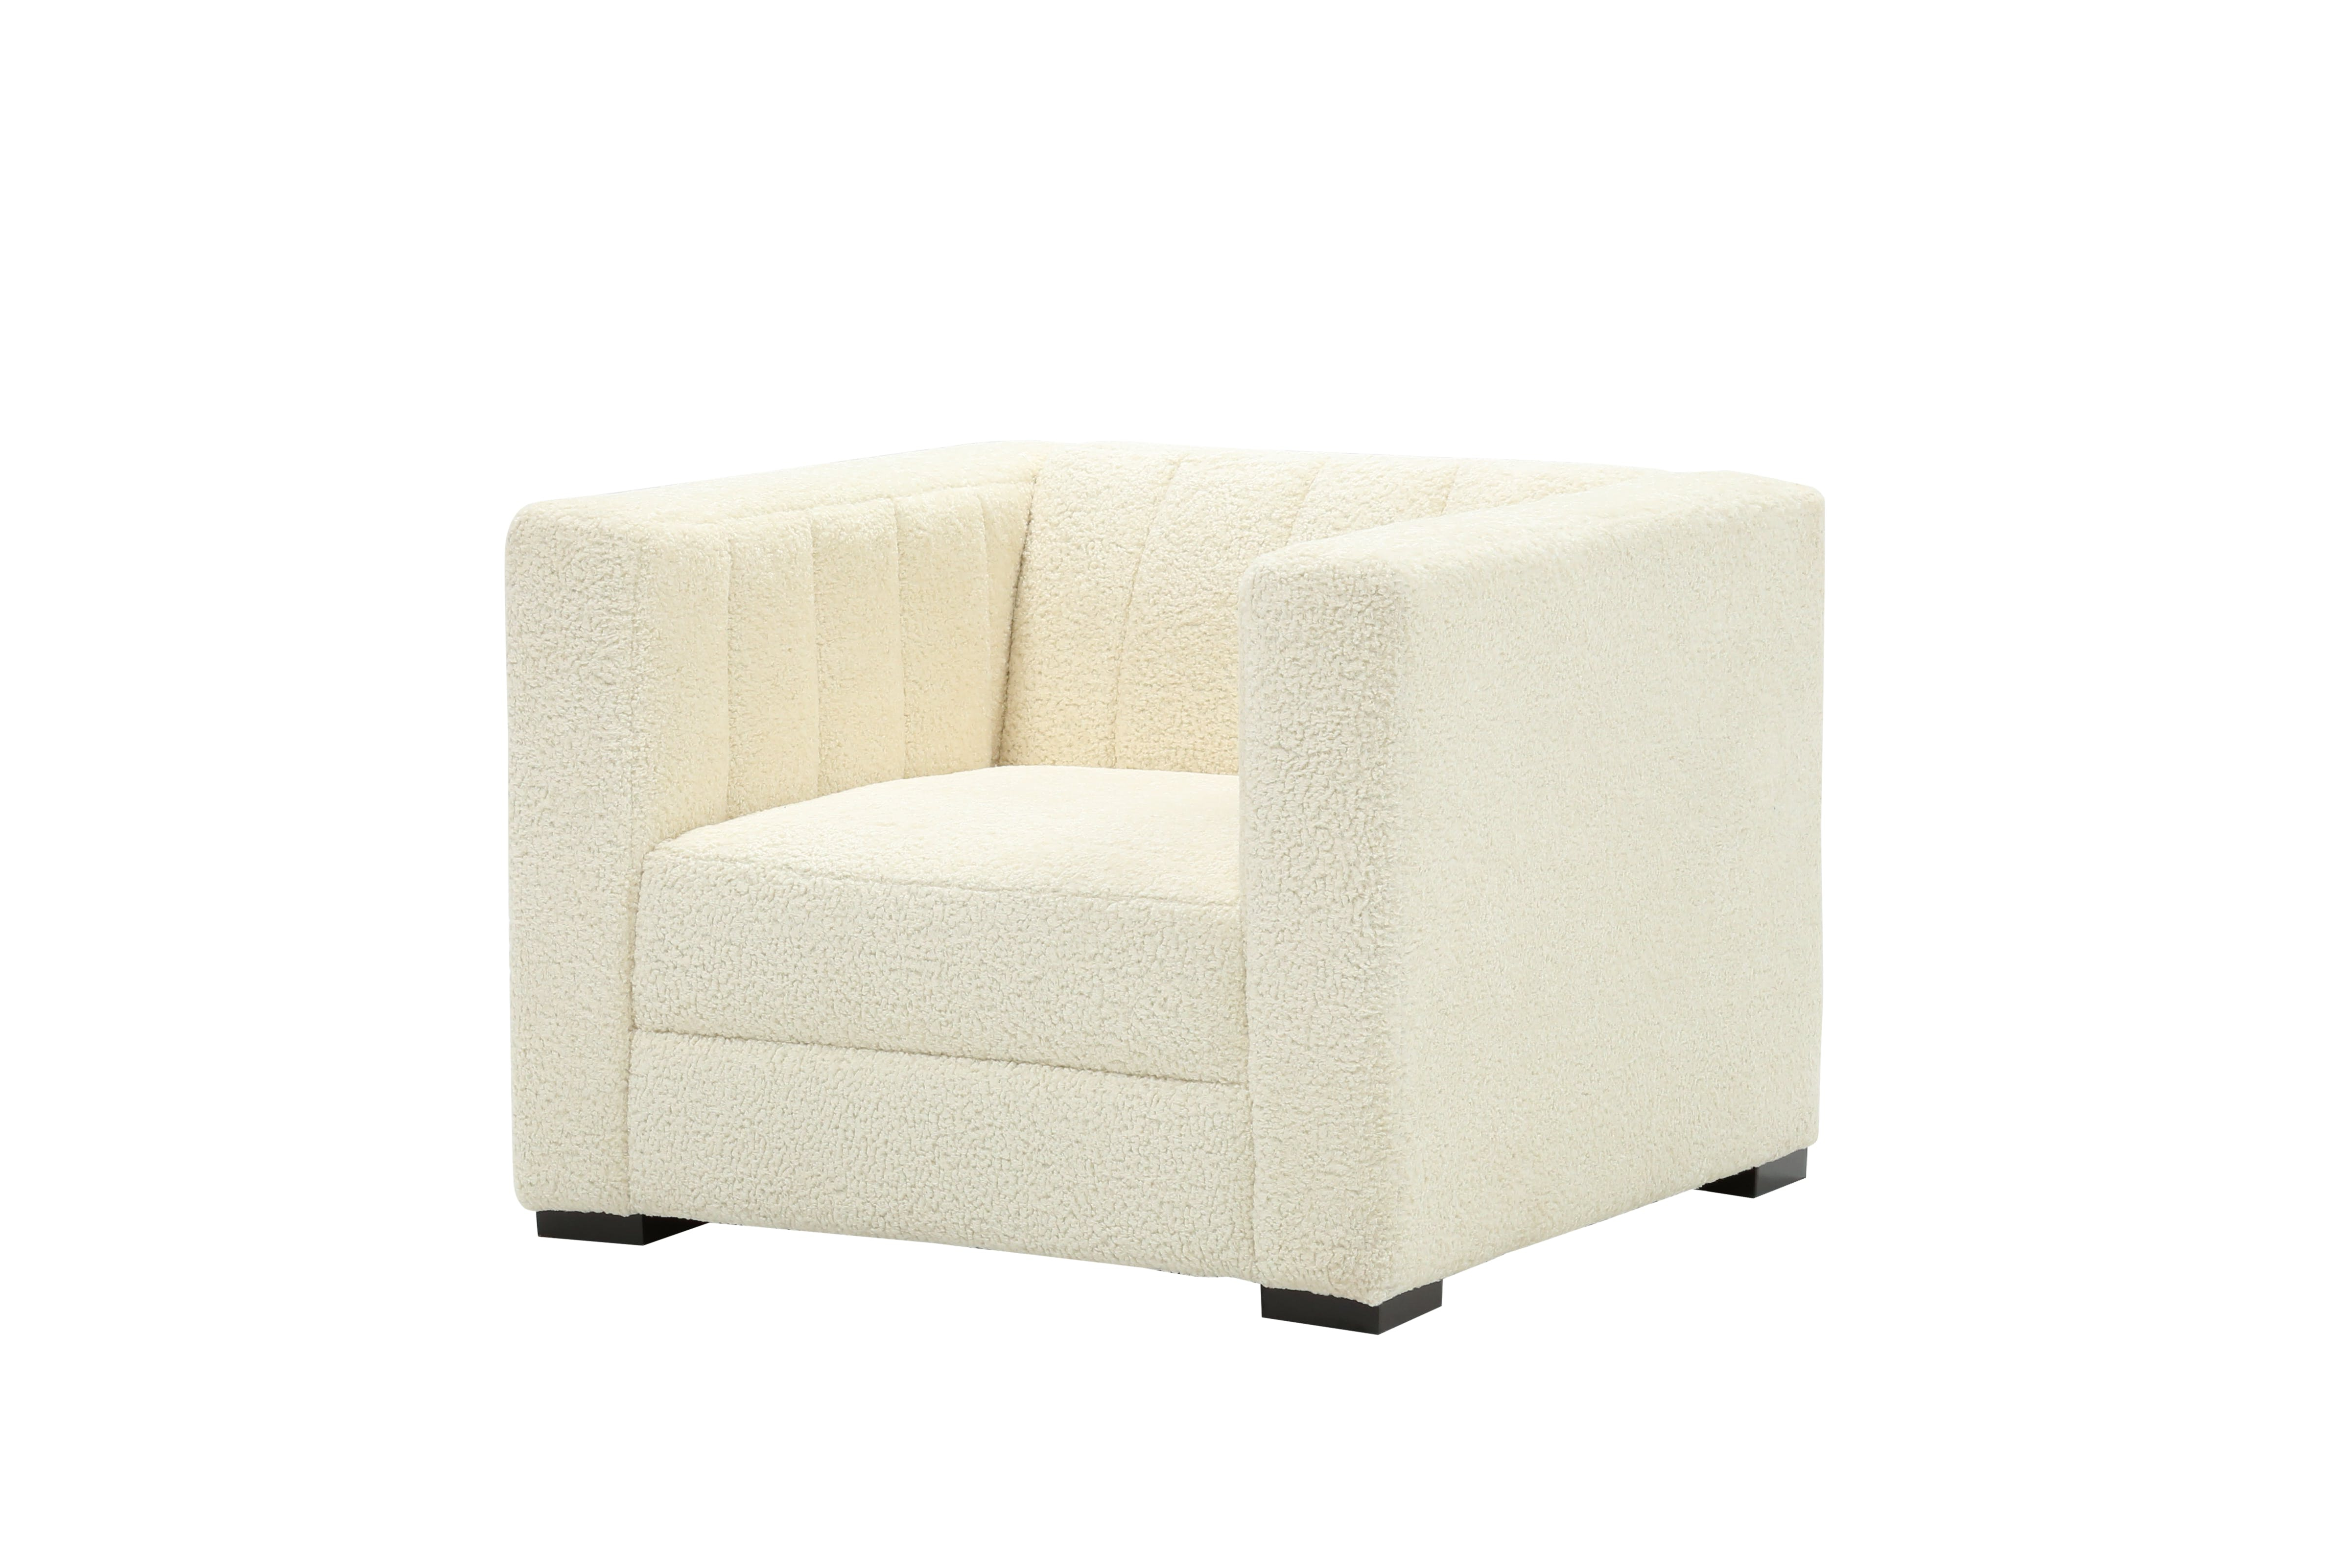 2019 Liv Arm Sofa Chairs Inside Nate Berkus Just Launched A Home Collection With Hubby Jeremiah (View 1 of 20)